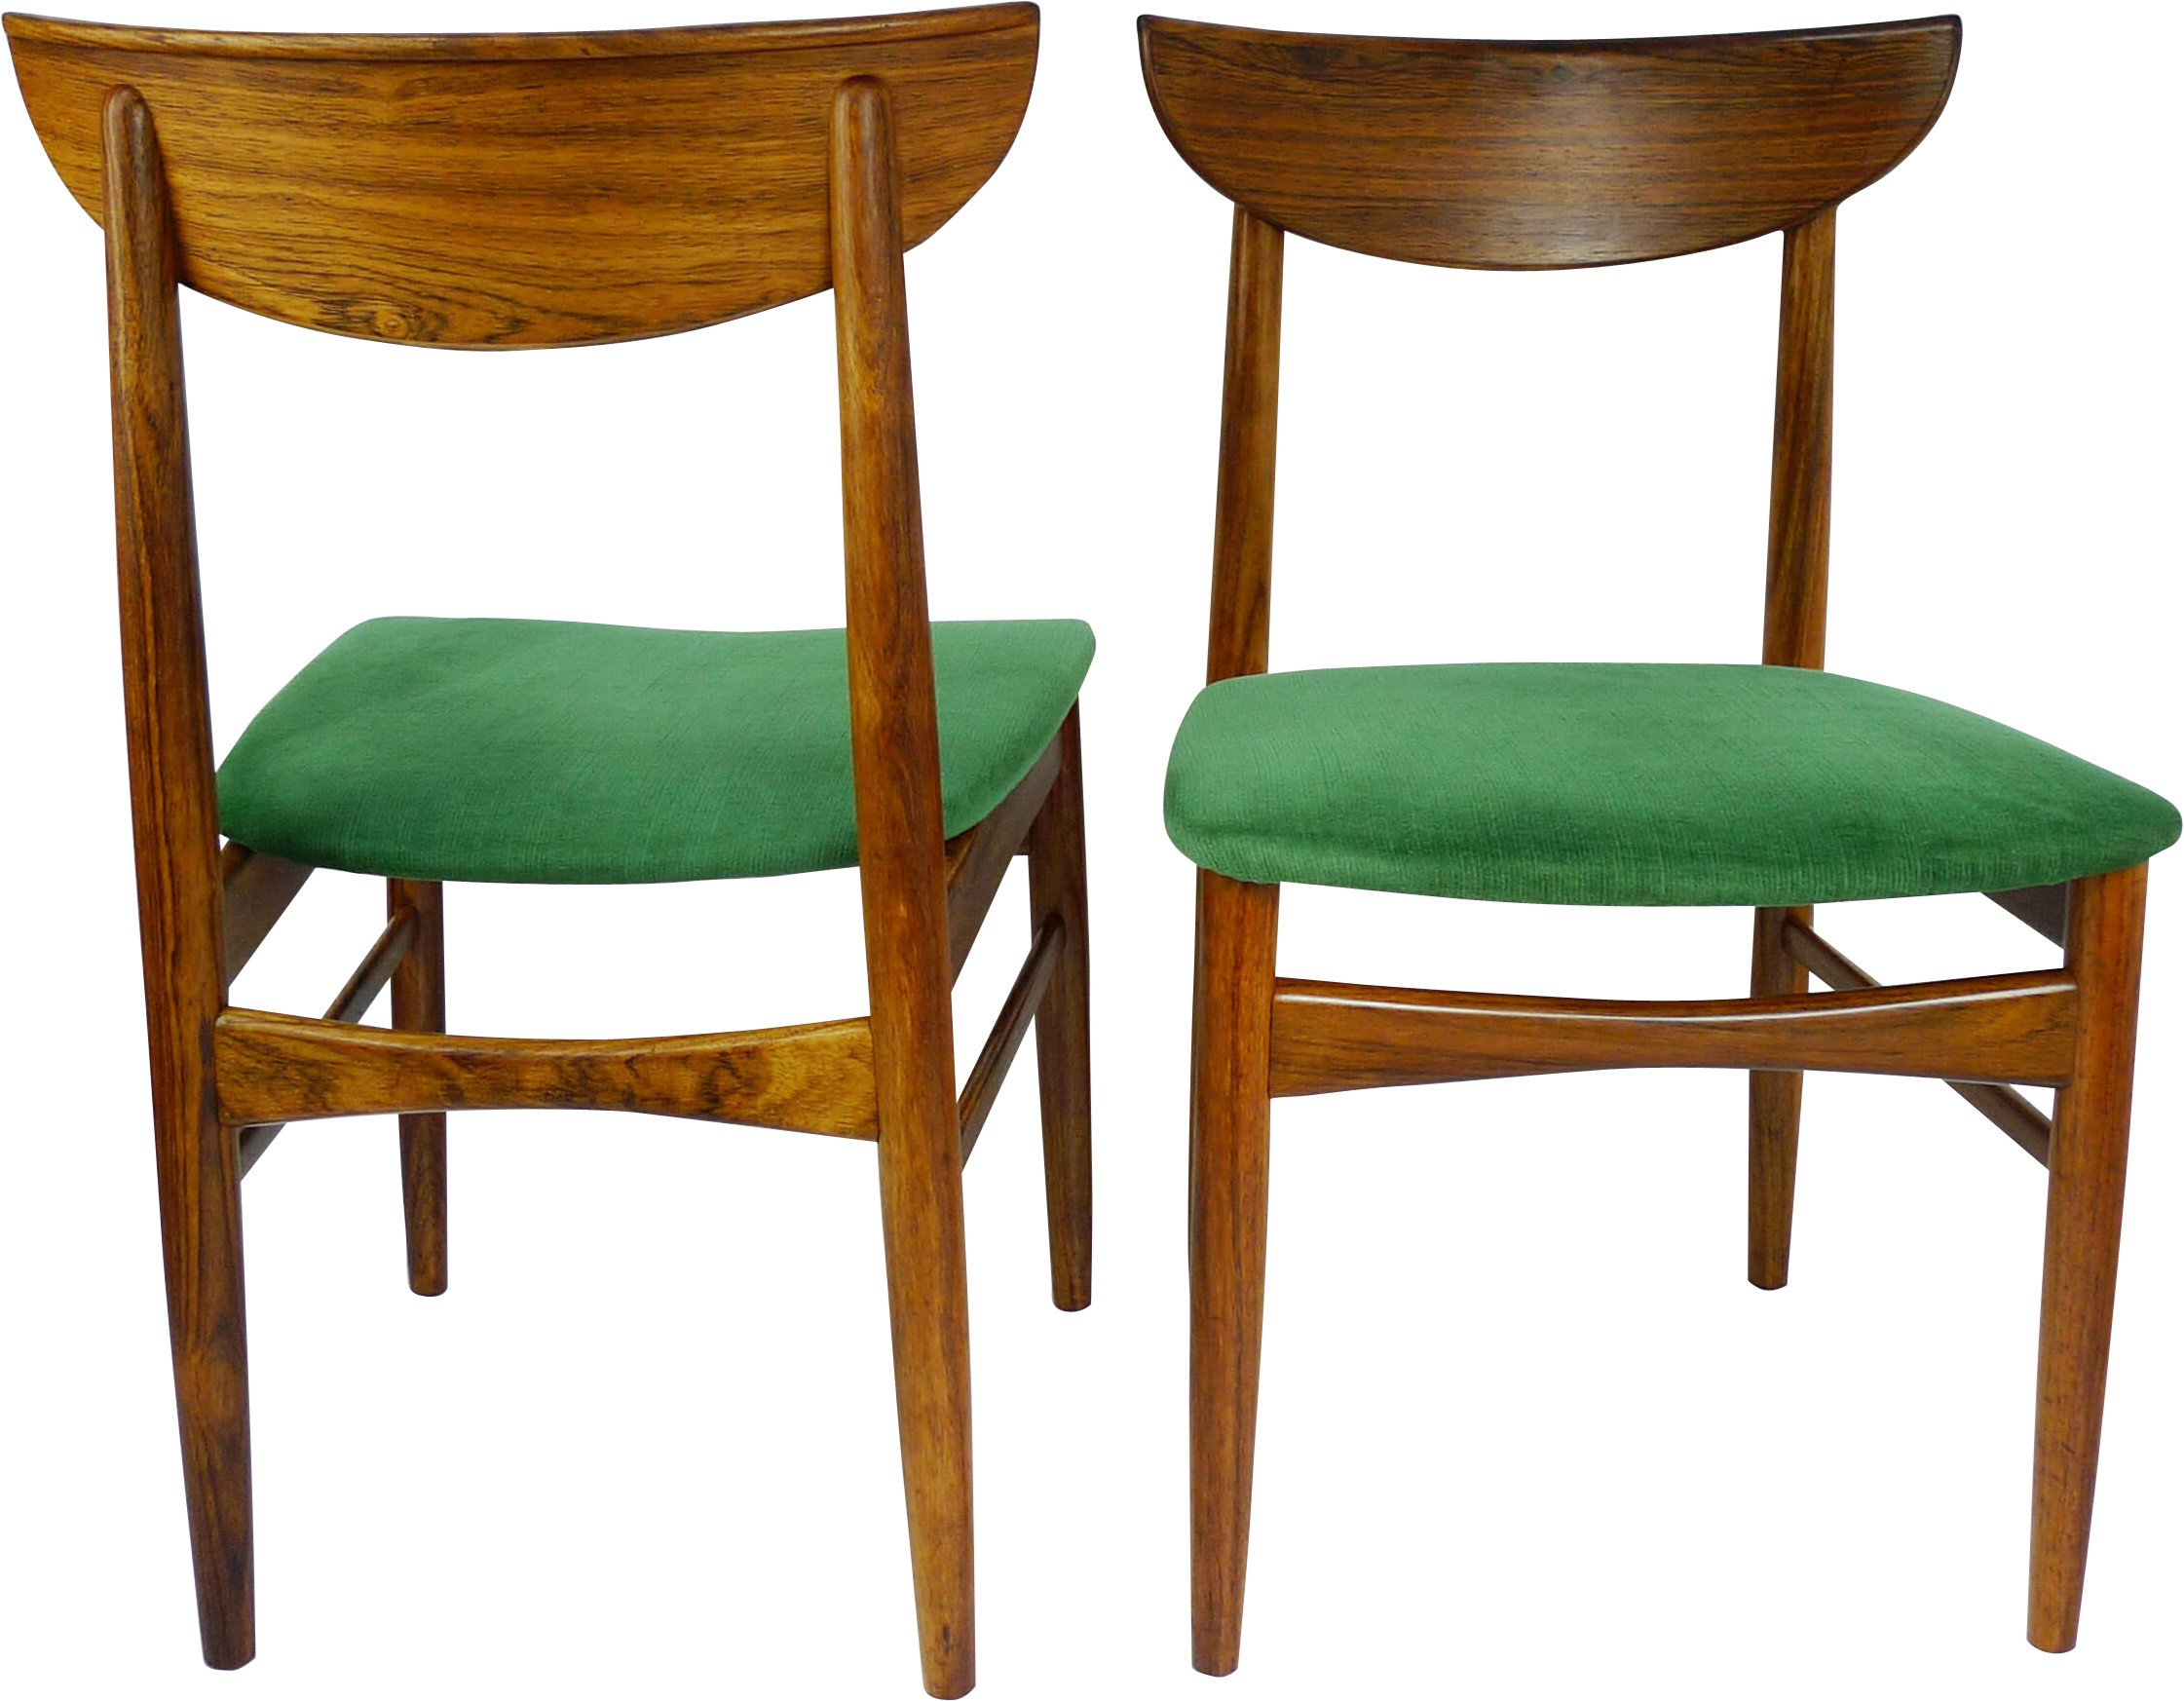 Pair of Chairs, Dyrlund, Denmark, 1960s